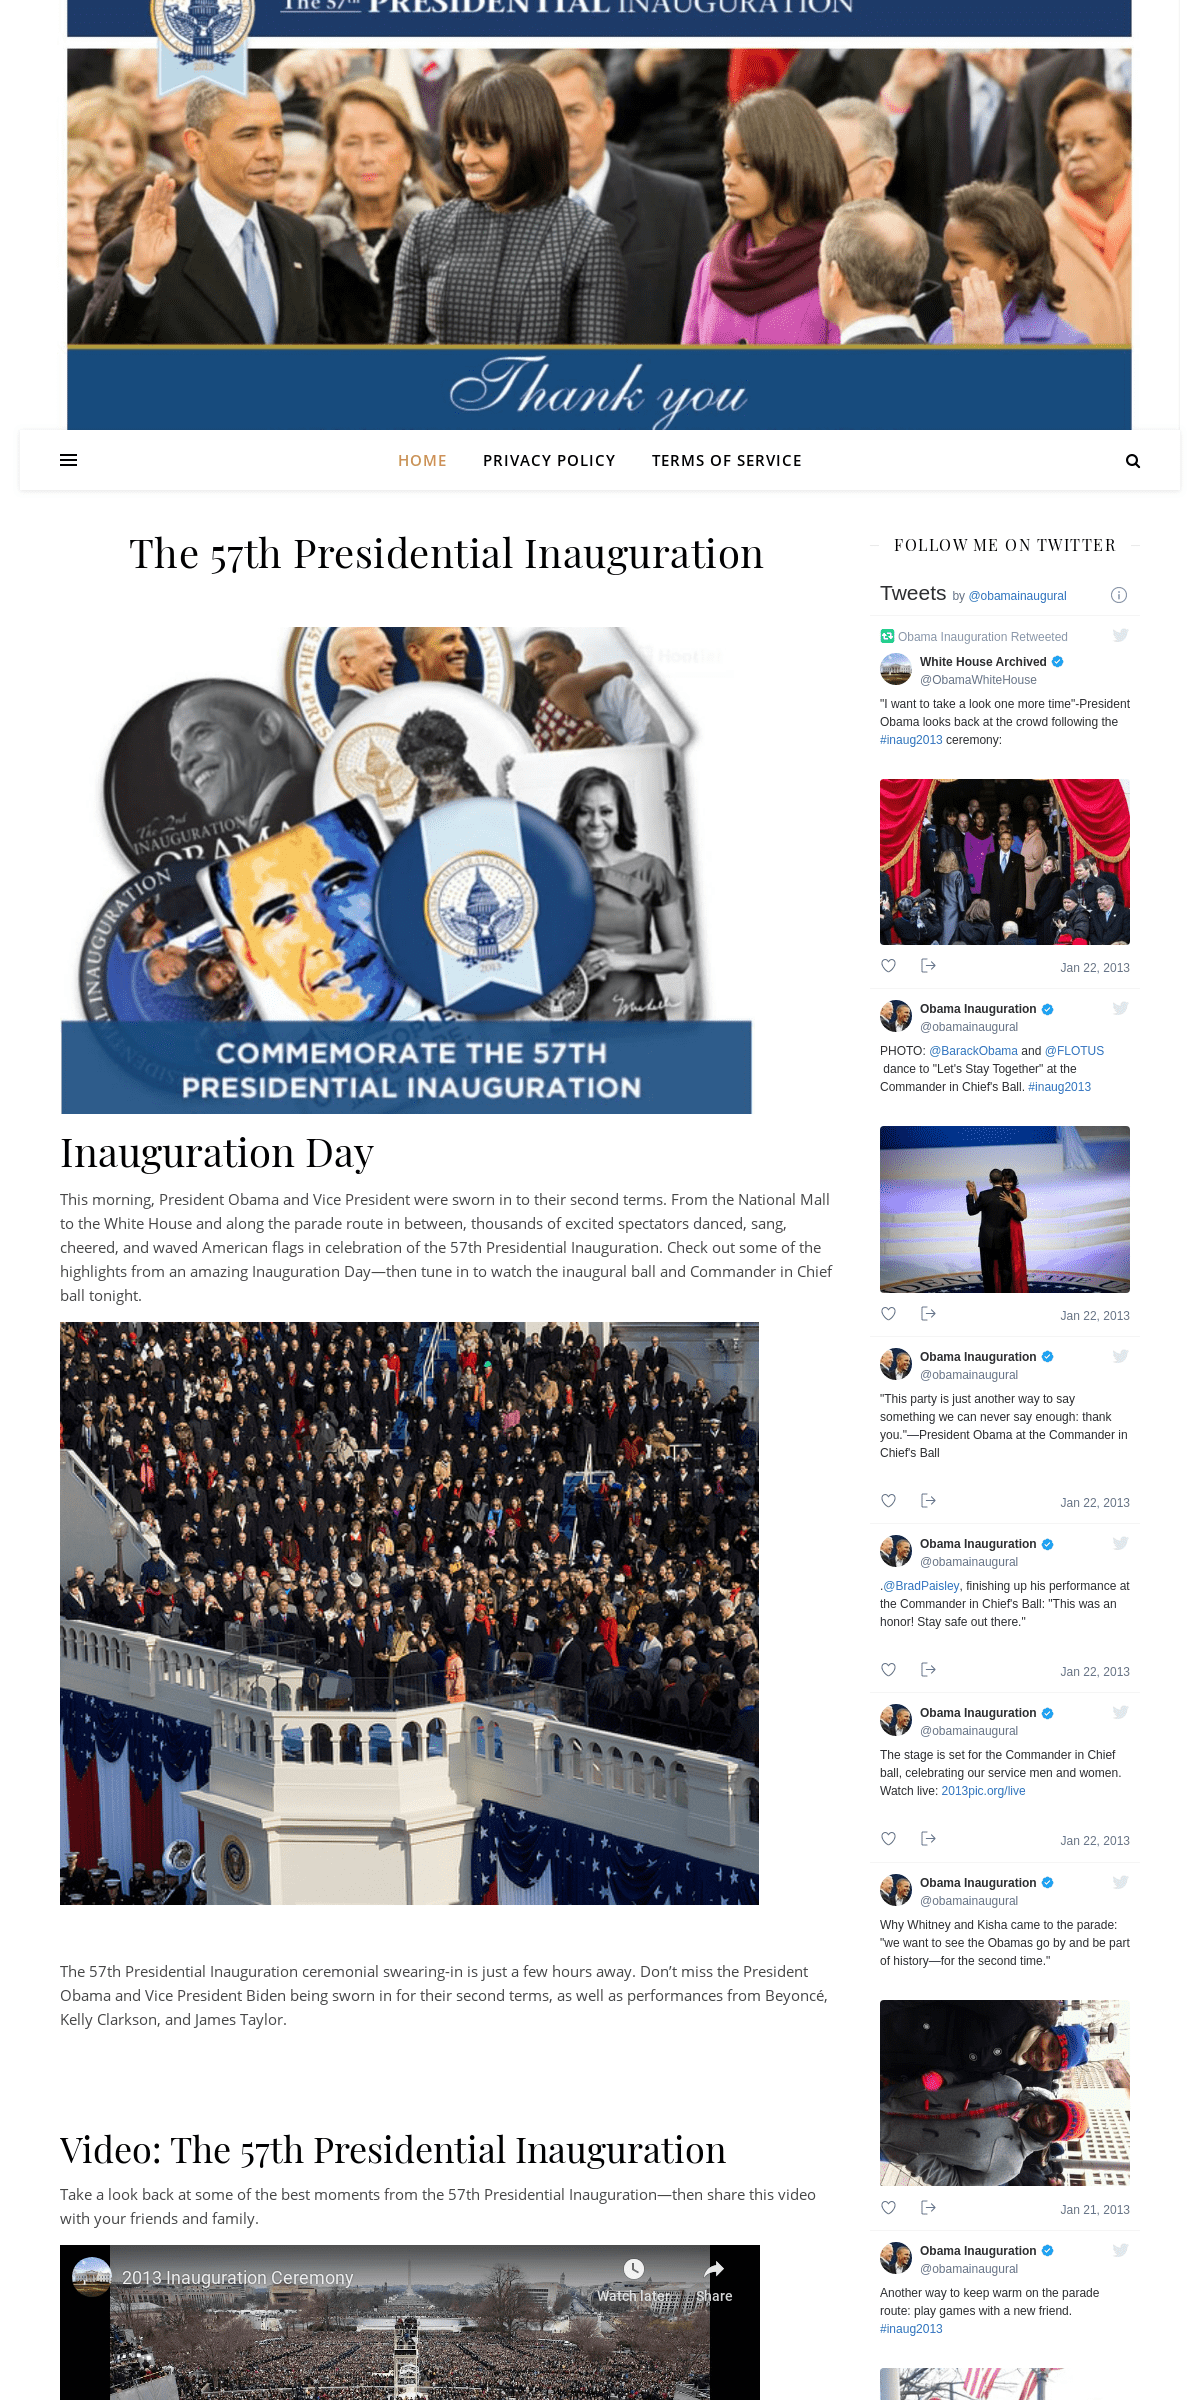 Presidential Inaugural Committee 2013 – The 57th Presidential Inauguration